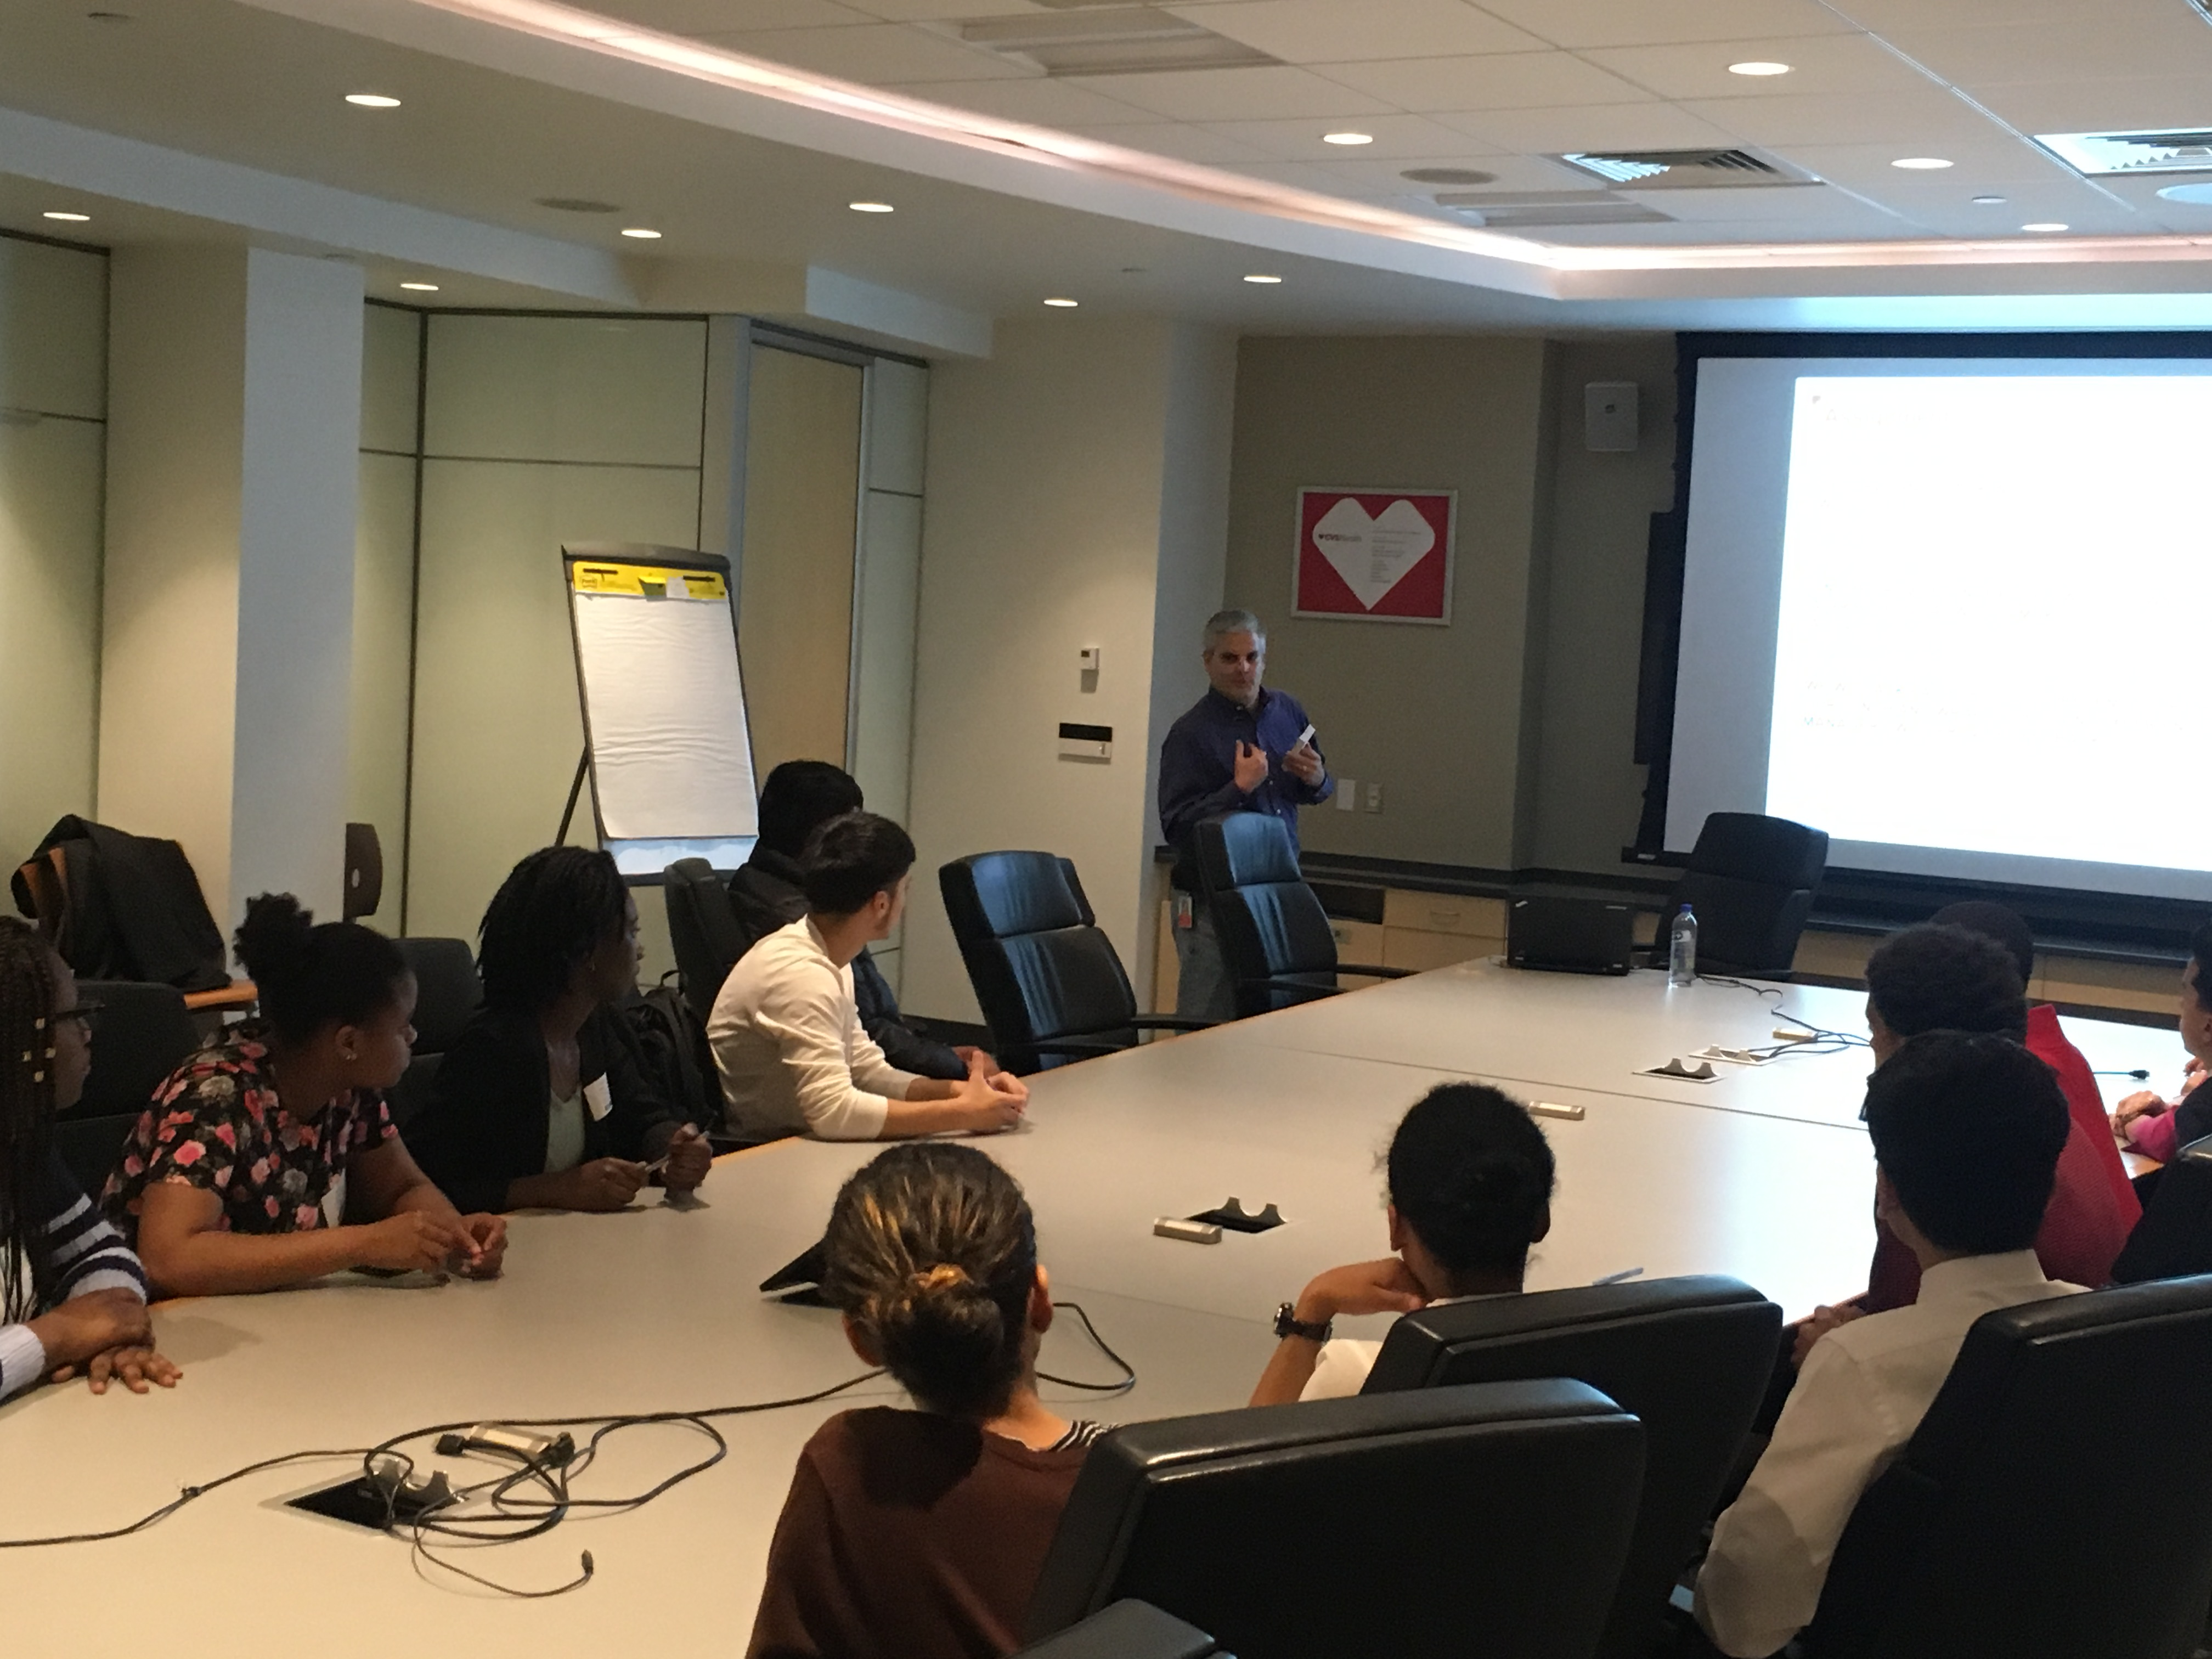 Today's Class: May 5th, 2017 – CVS Heath Career and Job Day